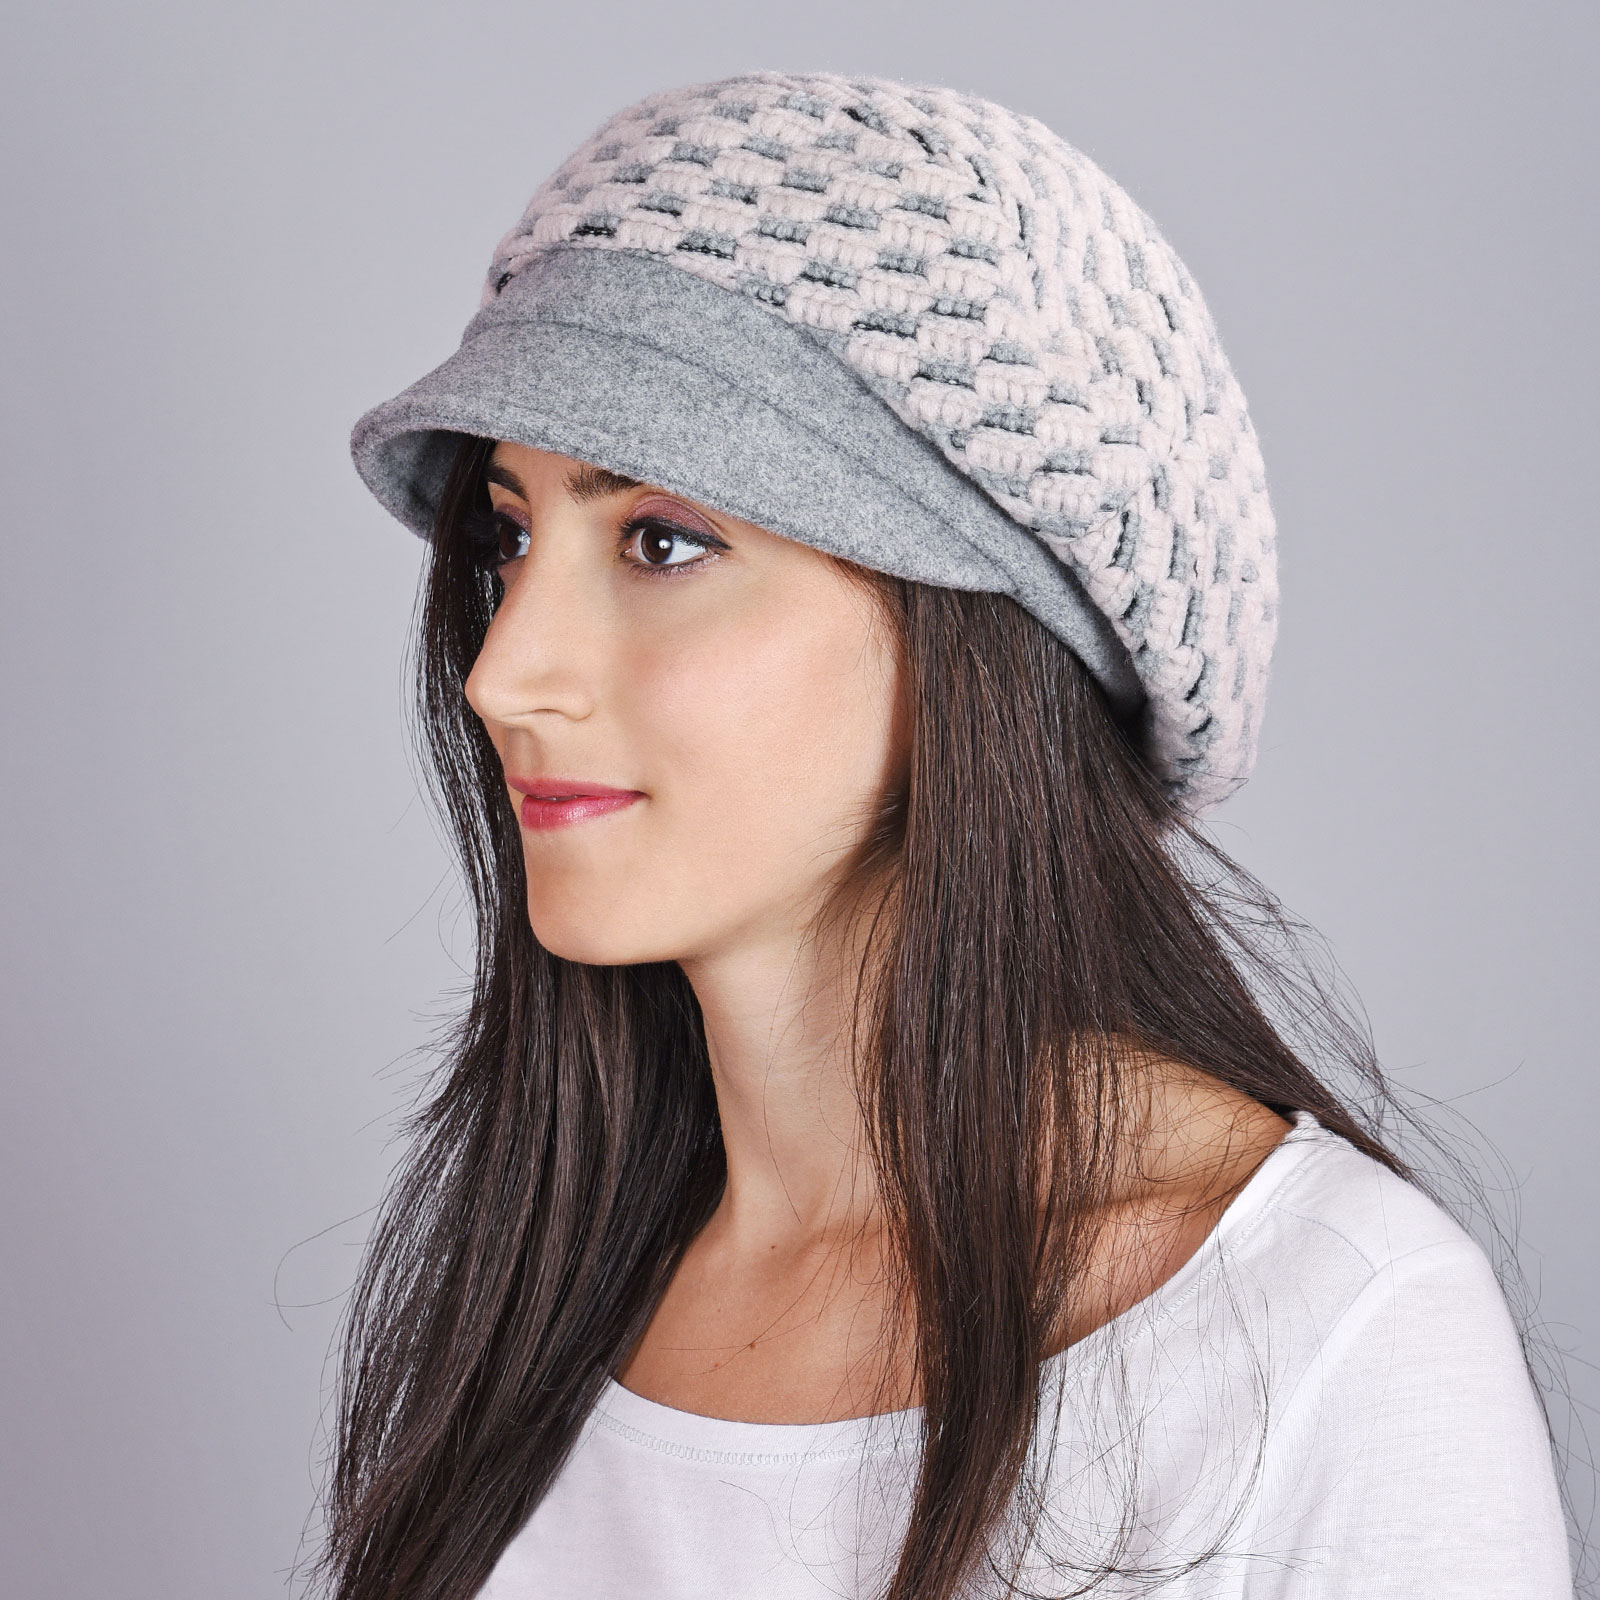 CP-01004-VF16-1-casquette-femme-tricot-grise